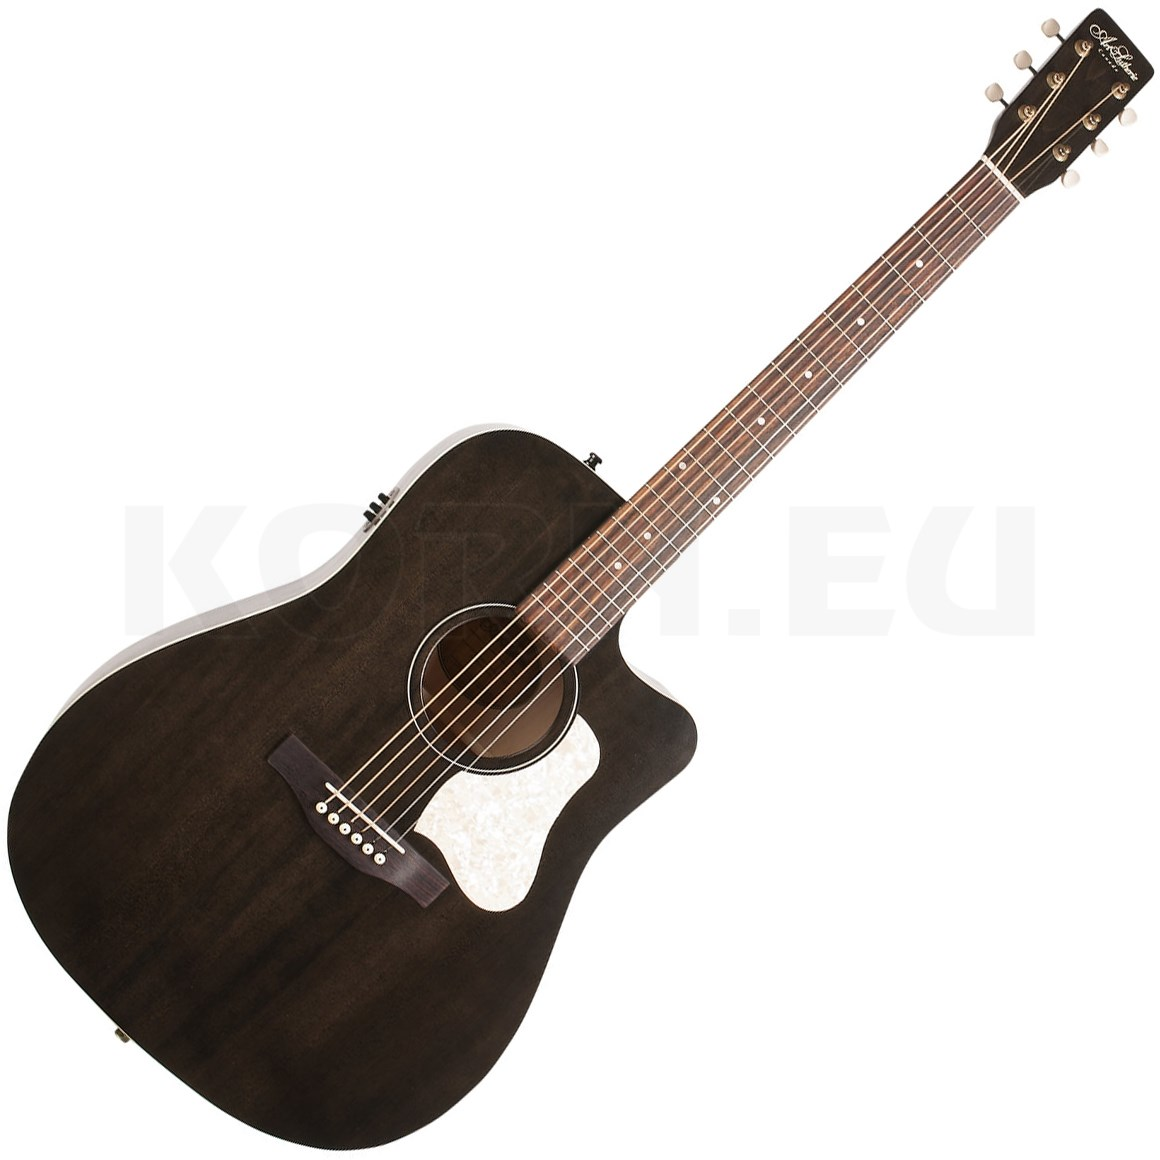 Art Et Lutherie Americana Dreadnought Qit: Art & Lutherie Americana Faded Black CW QIT...